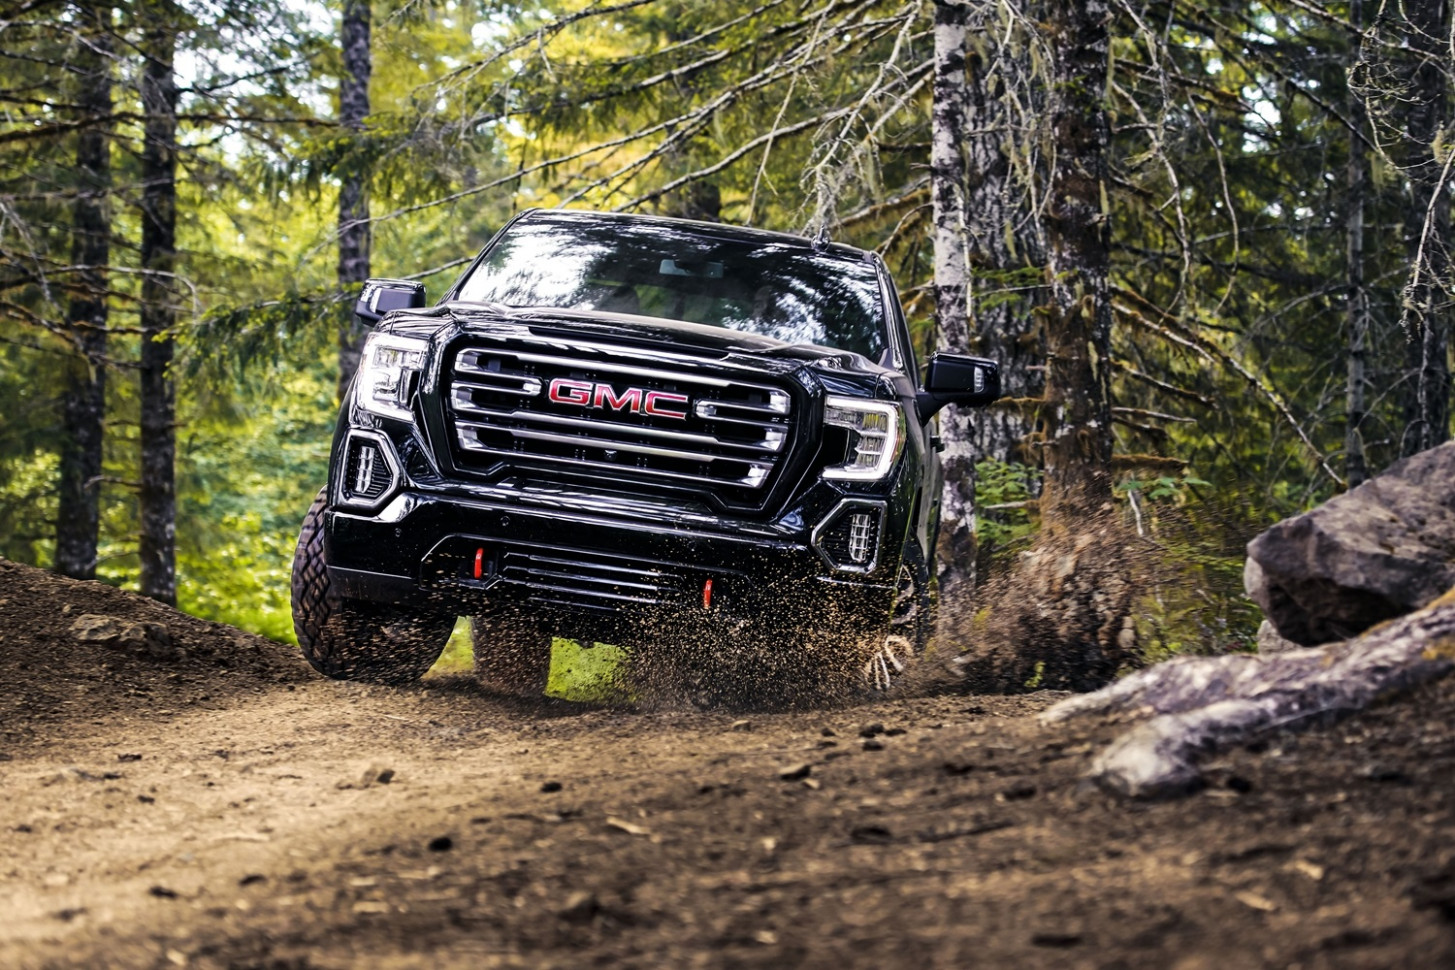 New Model and Performance Gmc Jeep 2022